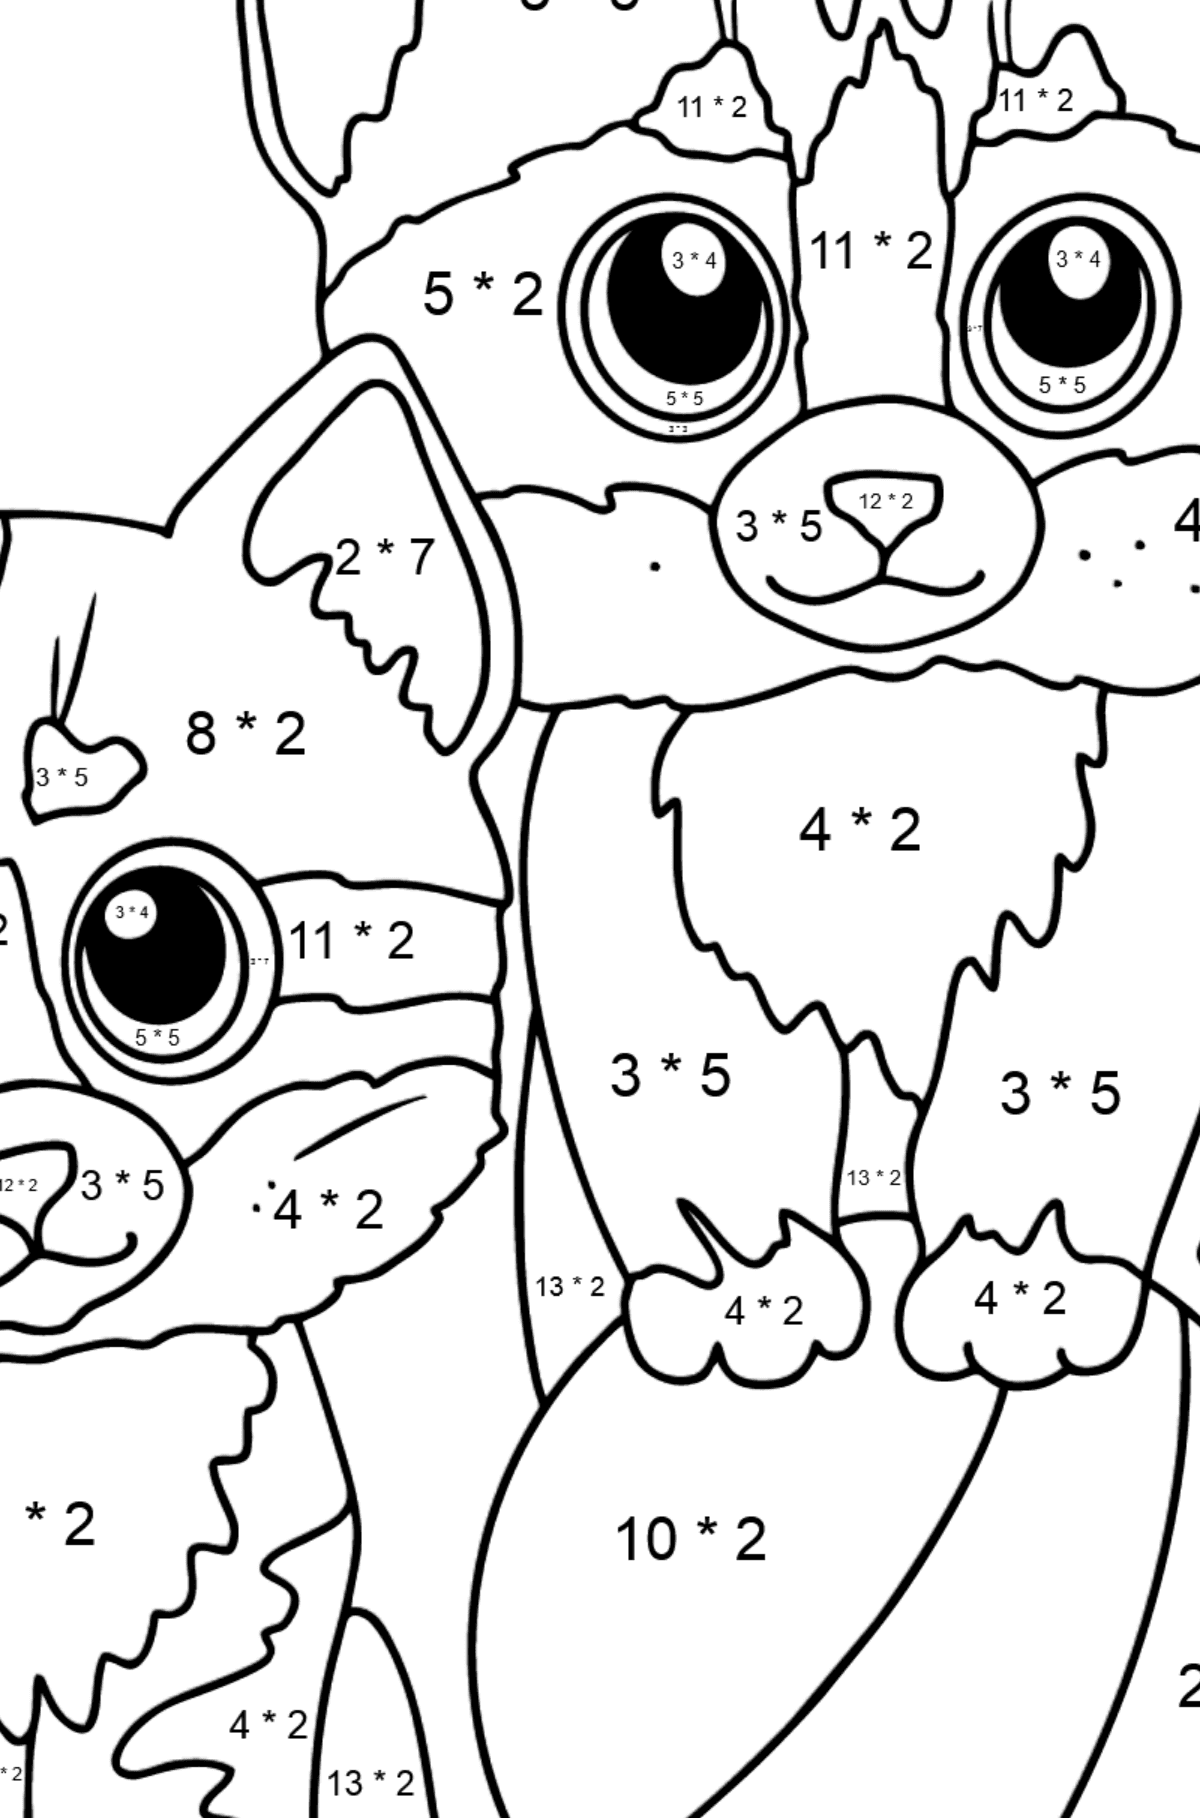 Coloring Page - Two Kittens with a Ball - Math Coloring - Multiplication for Kids